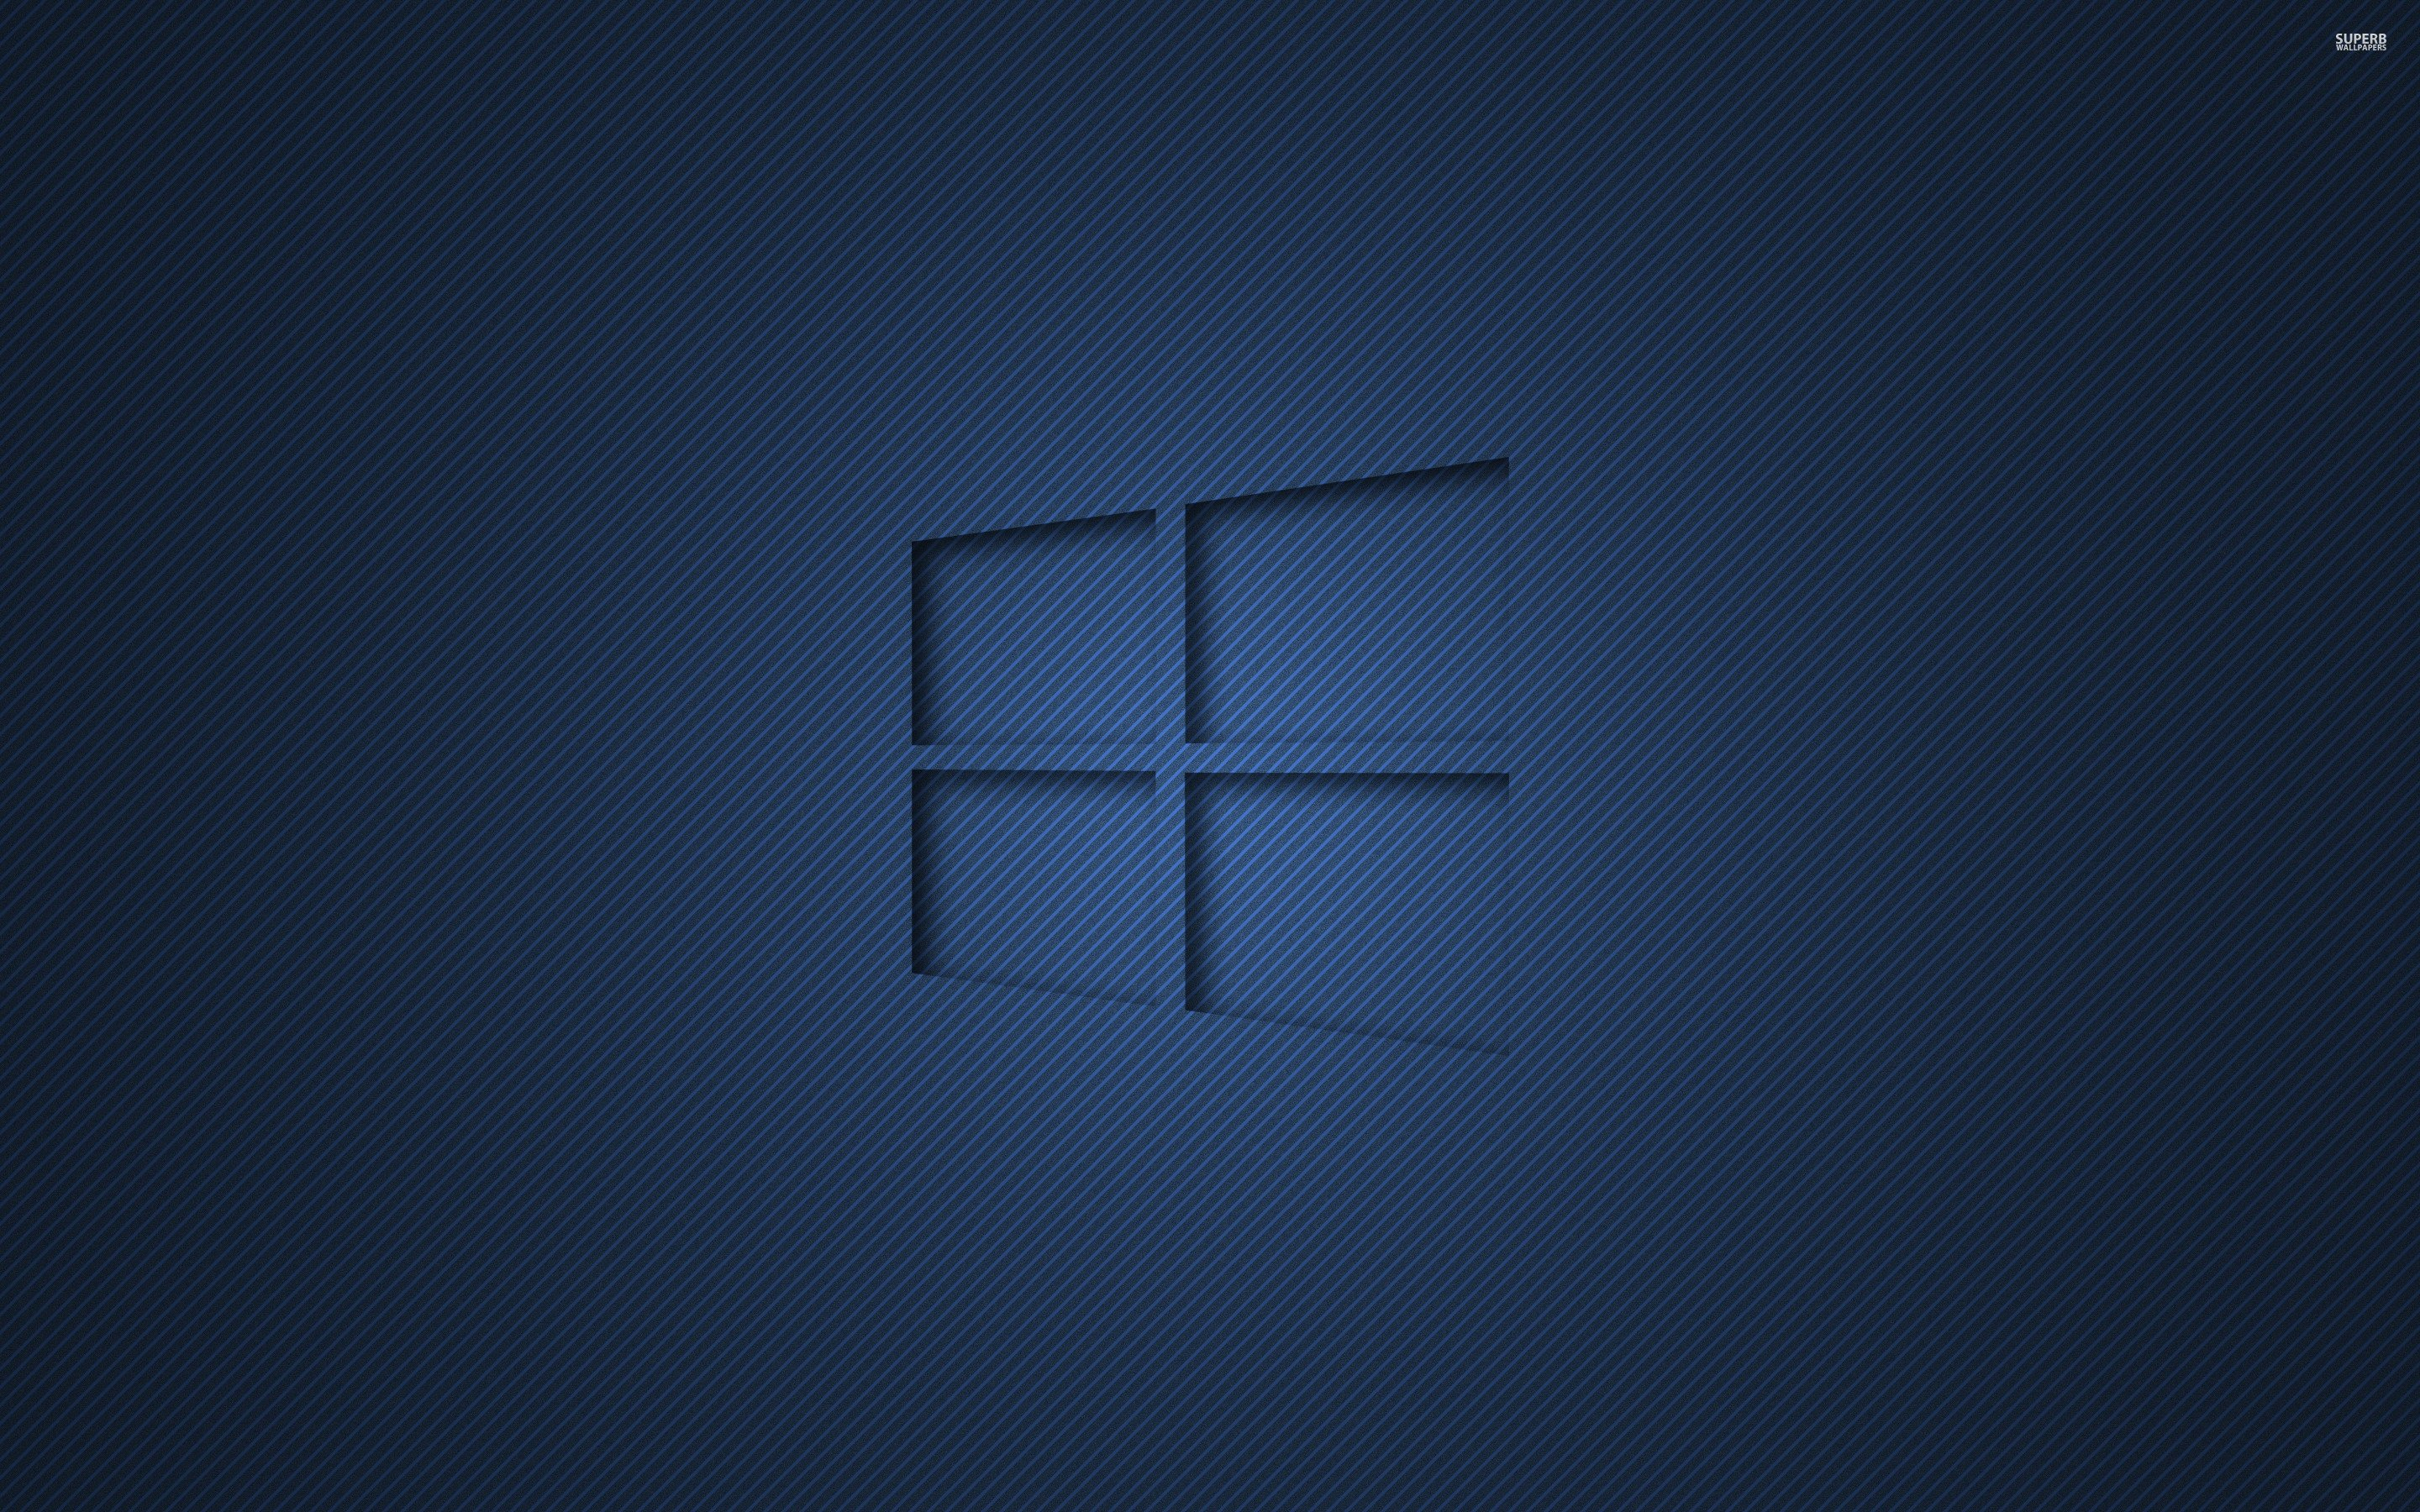 Windows 10 Hero Wallpaper 4K  WallpaperSafari